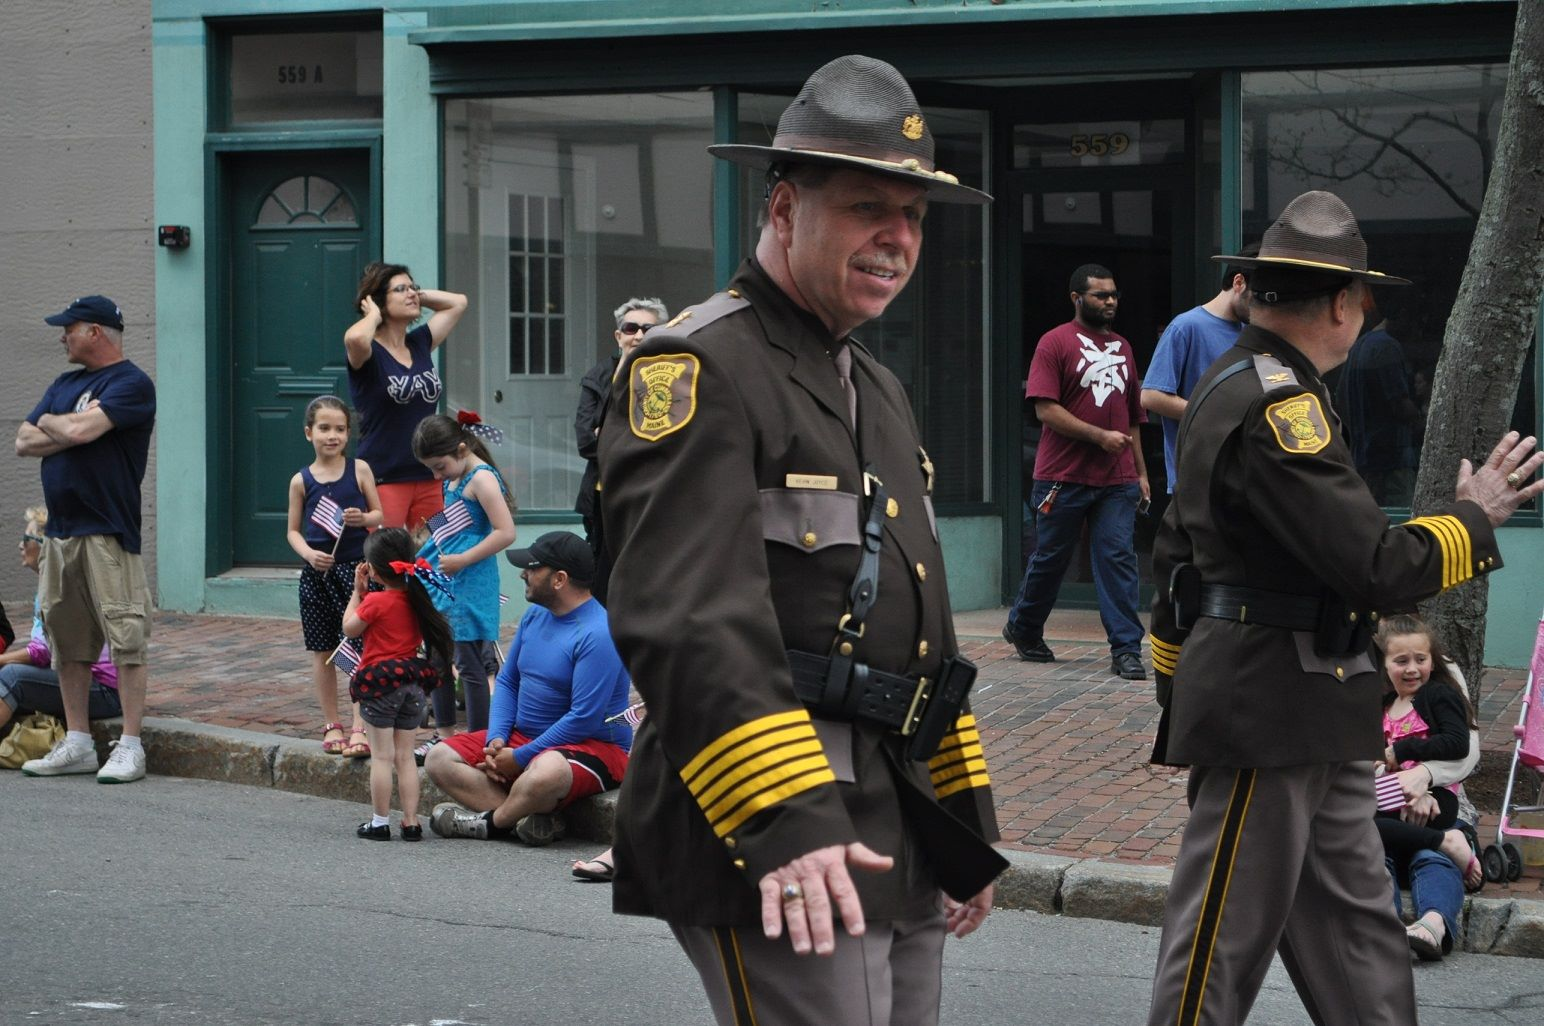 Sheriff and Deputies at Parade